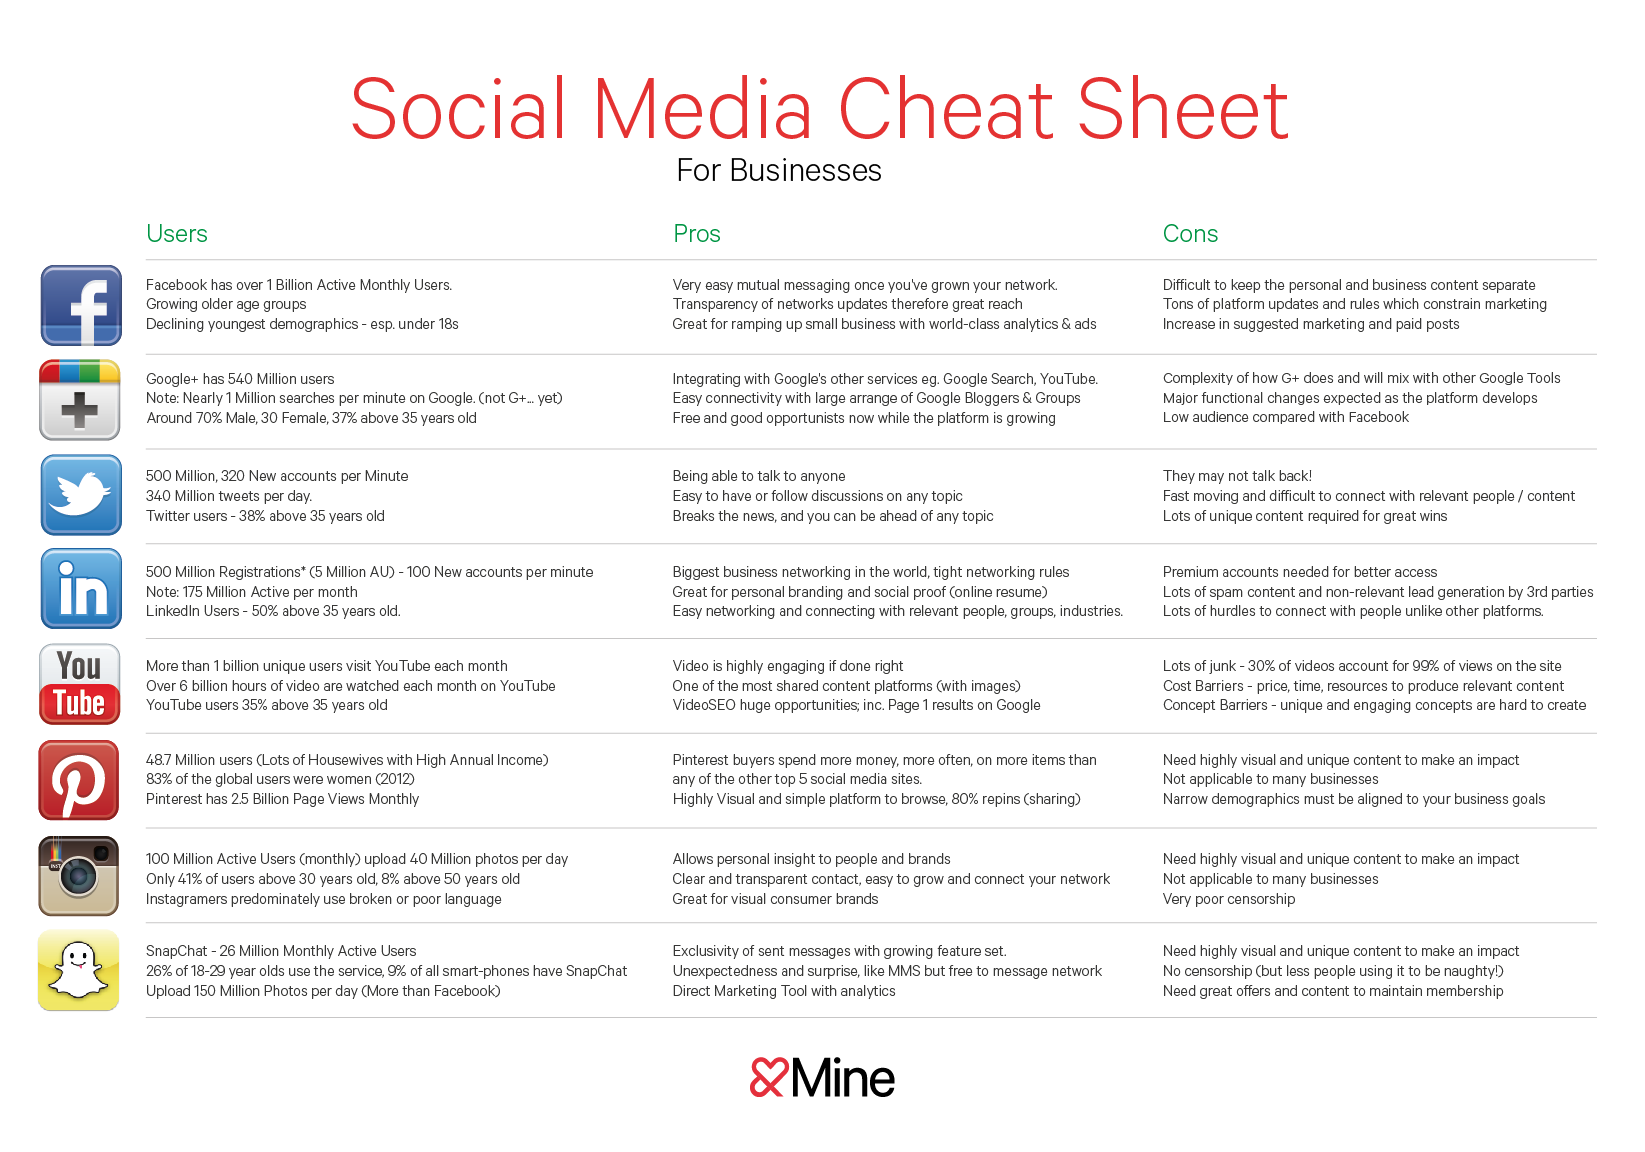 Social Media Cheat Sheet &Mine